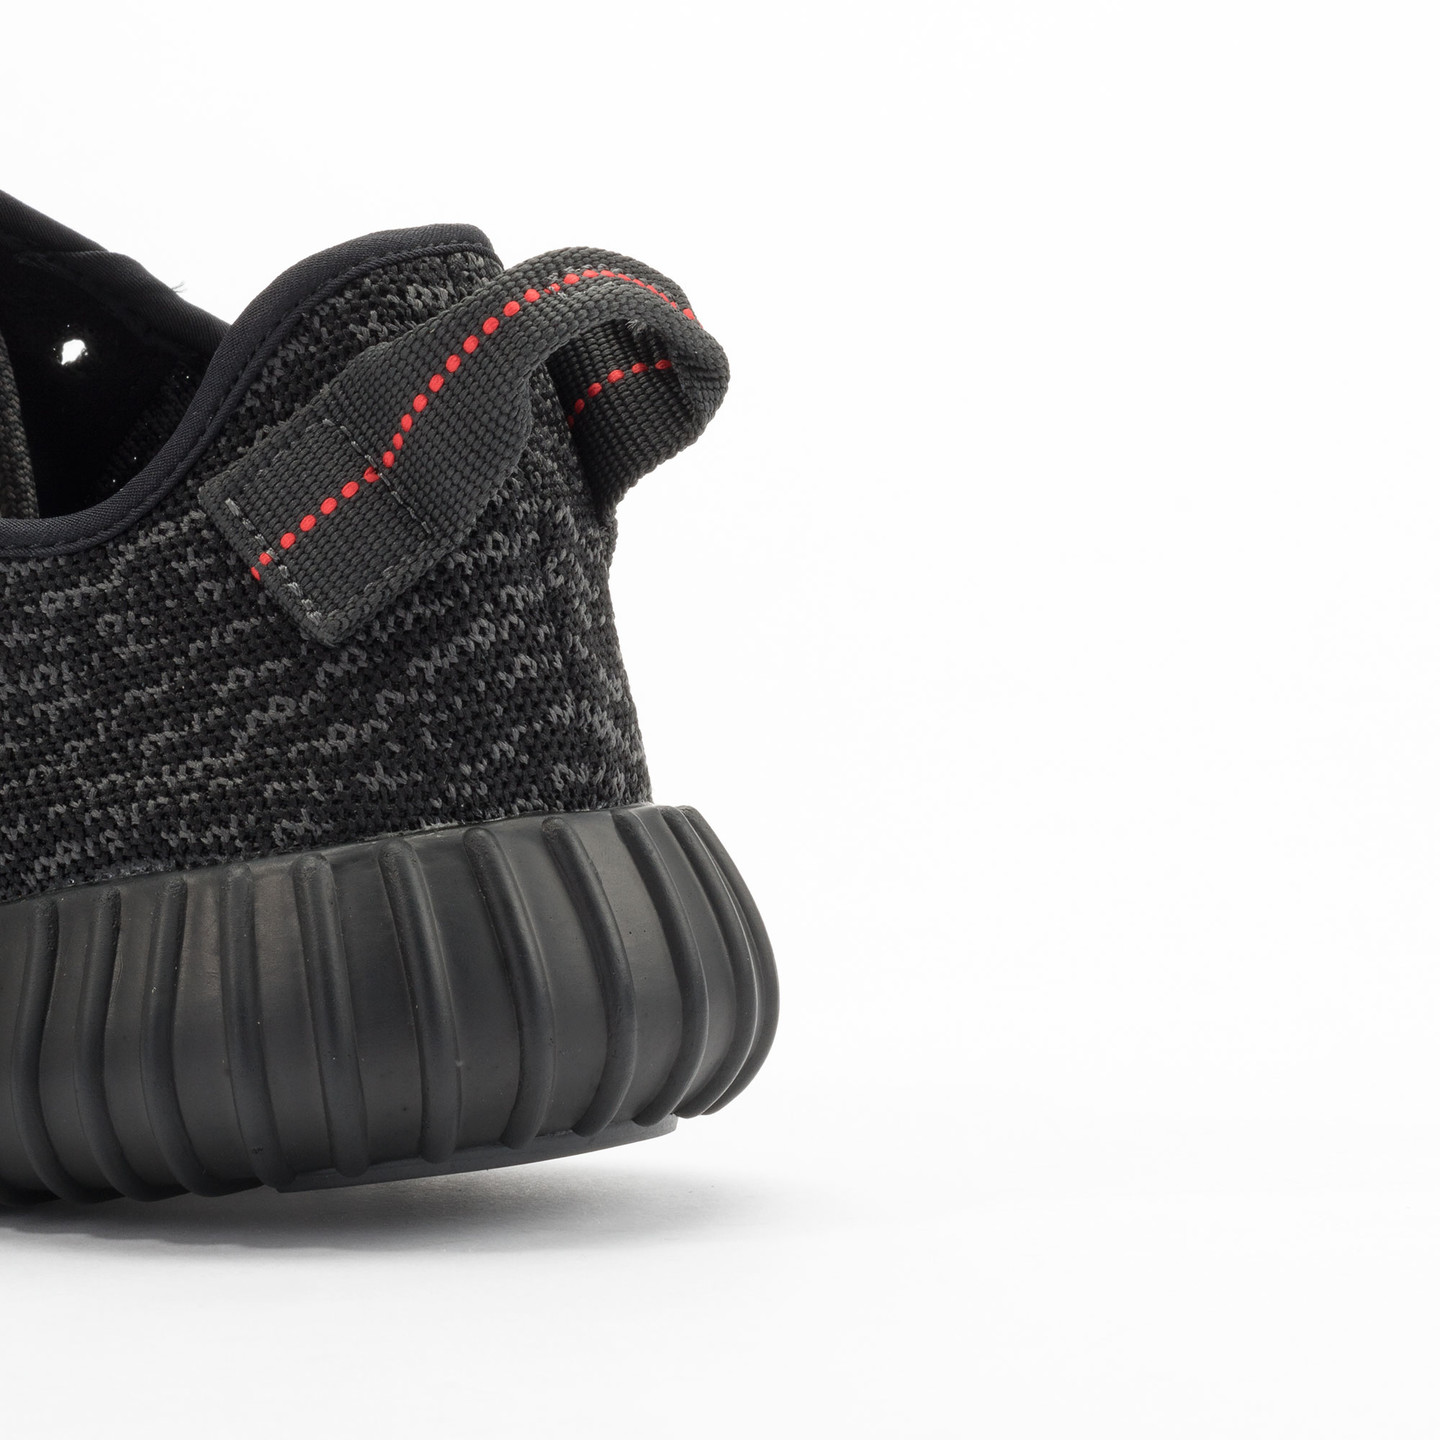 Adidas Yeezy Boost 350 Pirate Black AQ2659